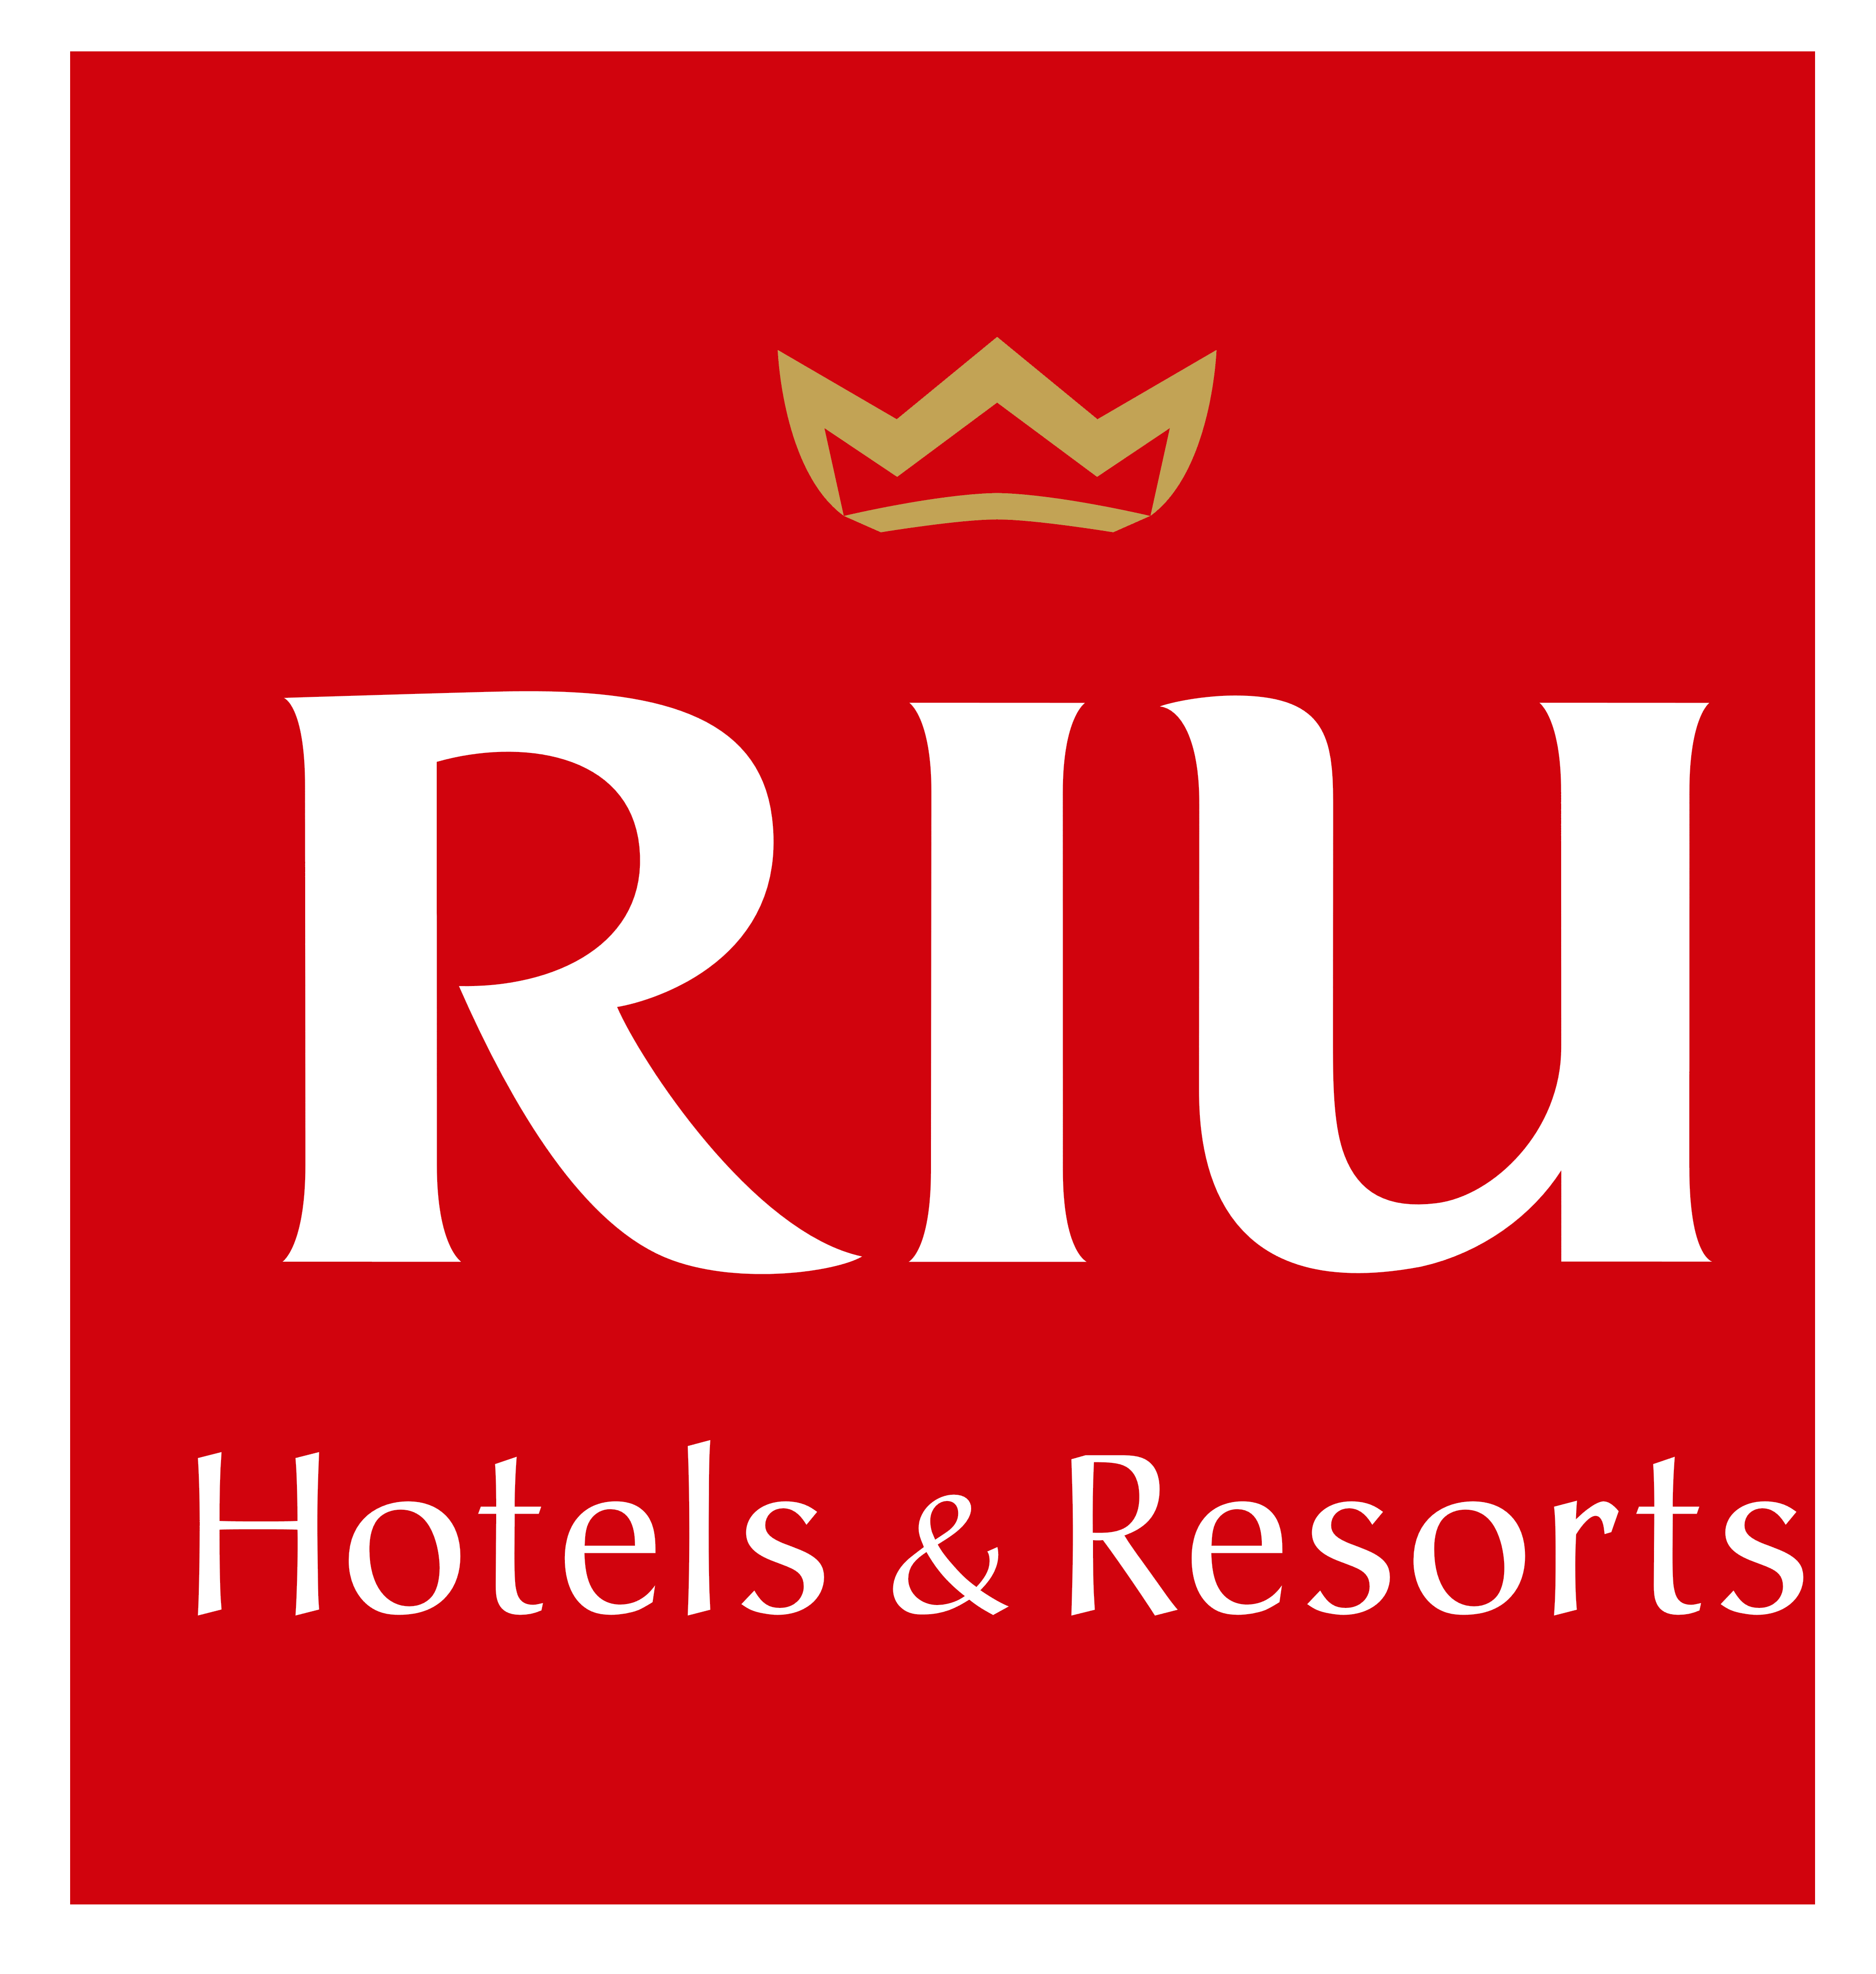 riu hotels resorts, holiday inn png logo #6557